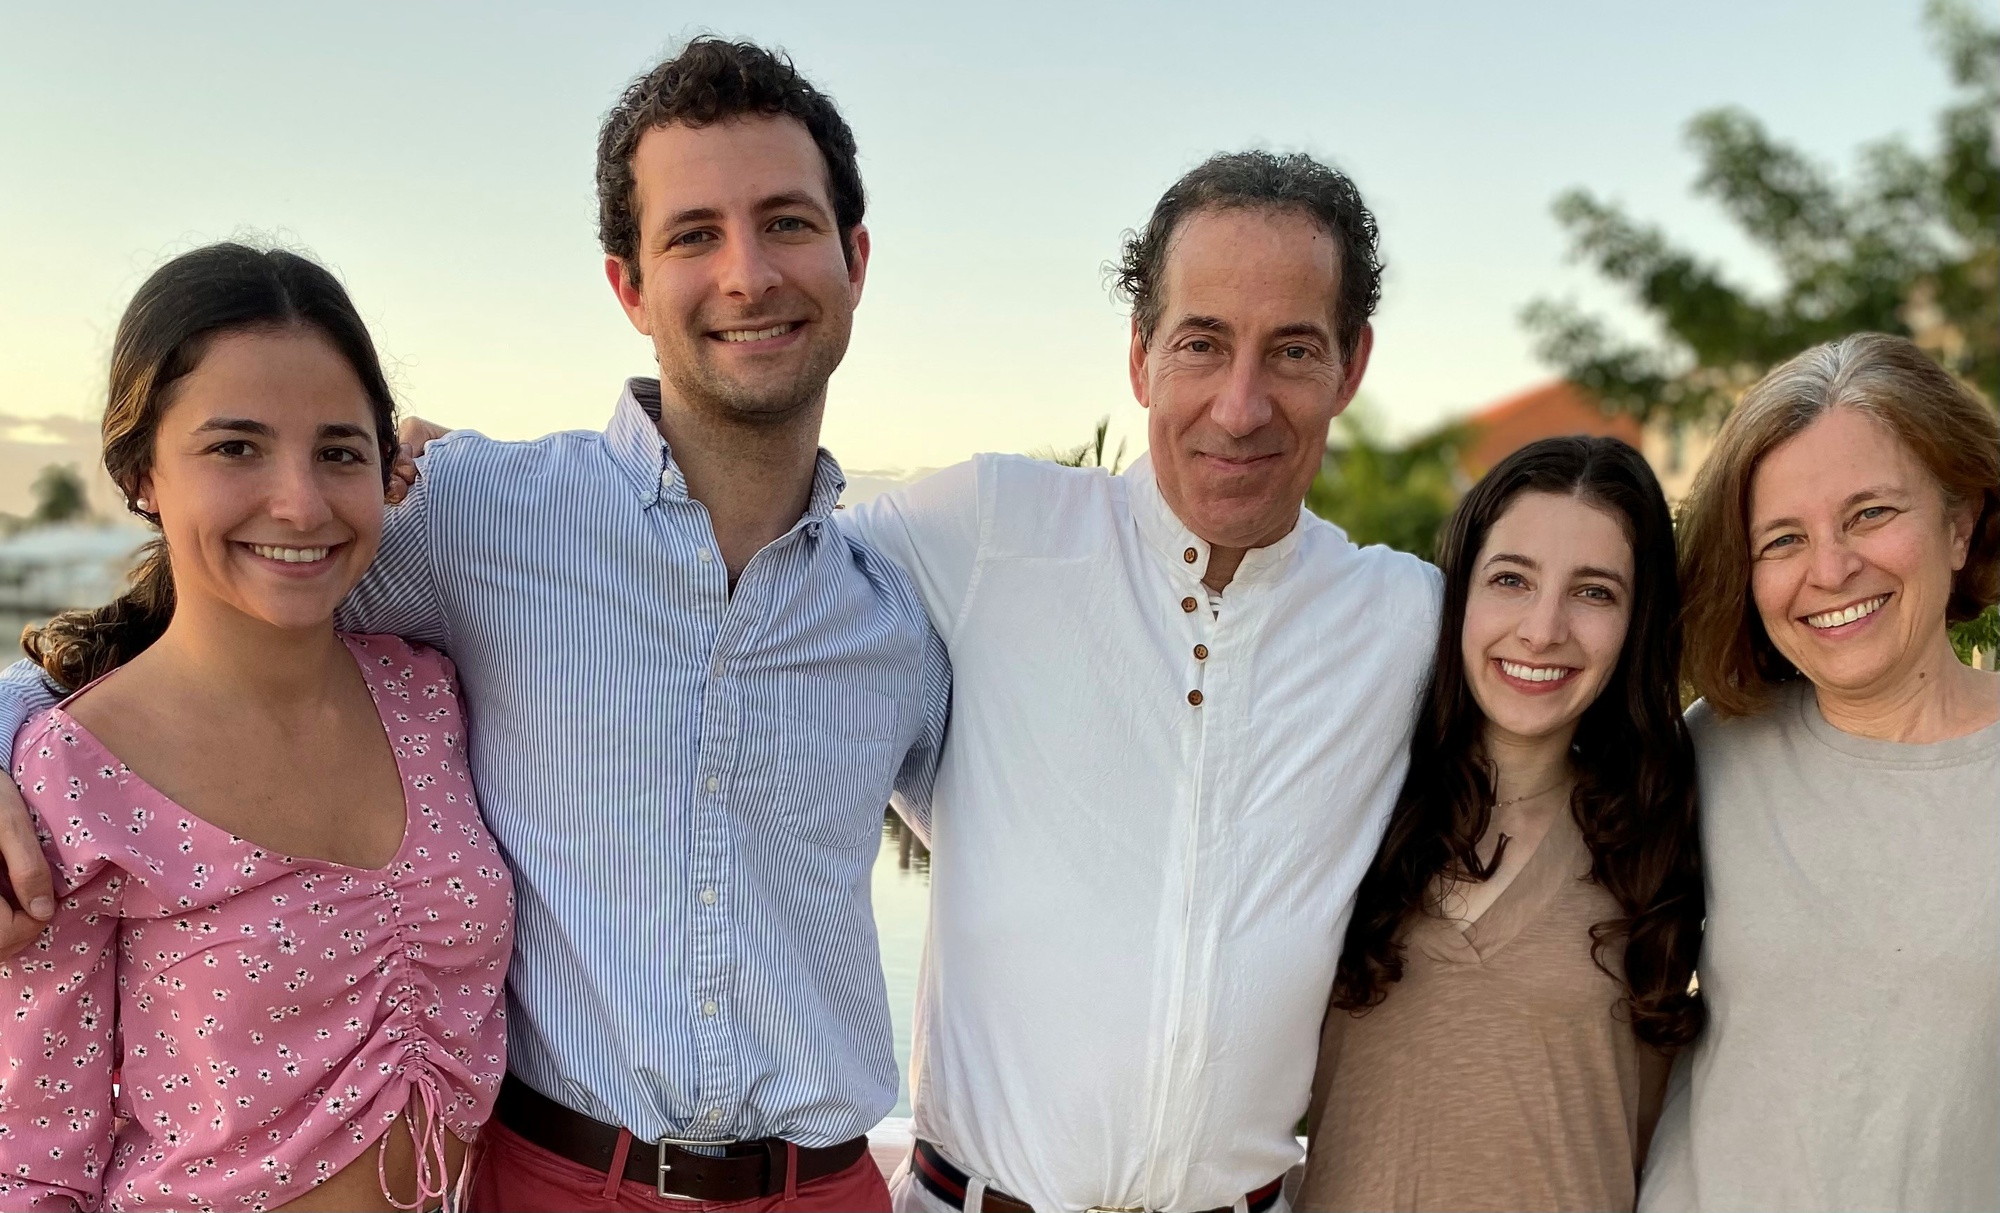 Harvard Remembers Tommy Raskin, an 'Extraordinary Young Person' with a 'Perfect Heart' And 'Dazzling Radiant Mind' | News | The Harvard Crimson